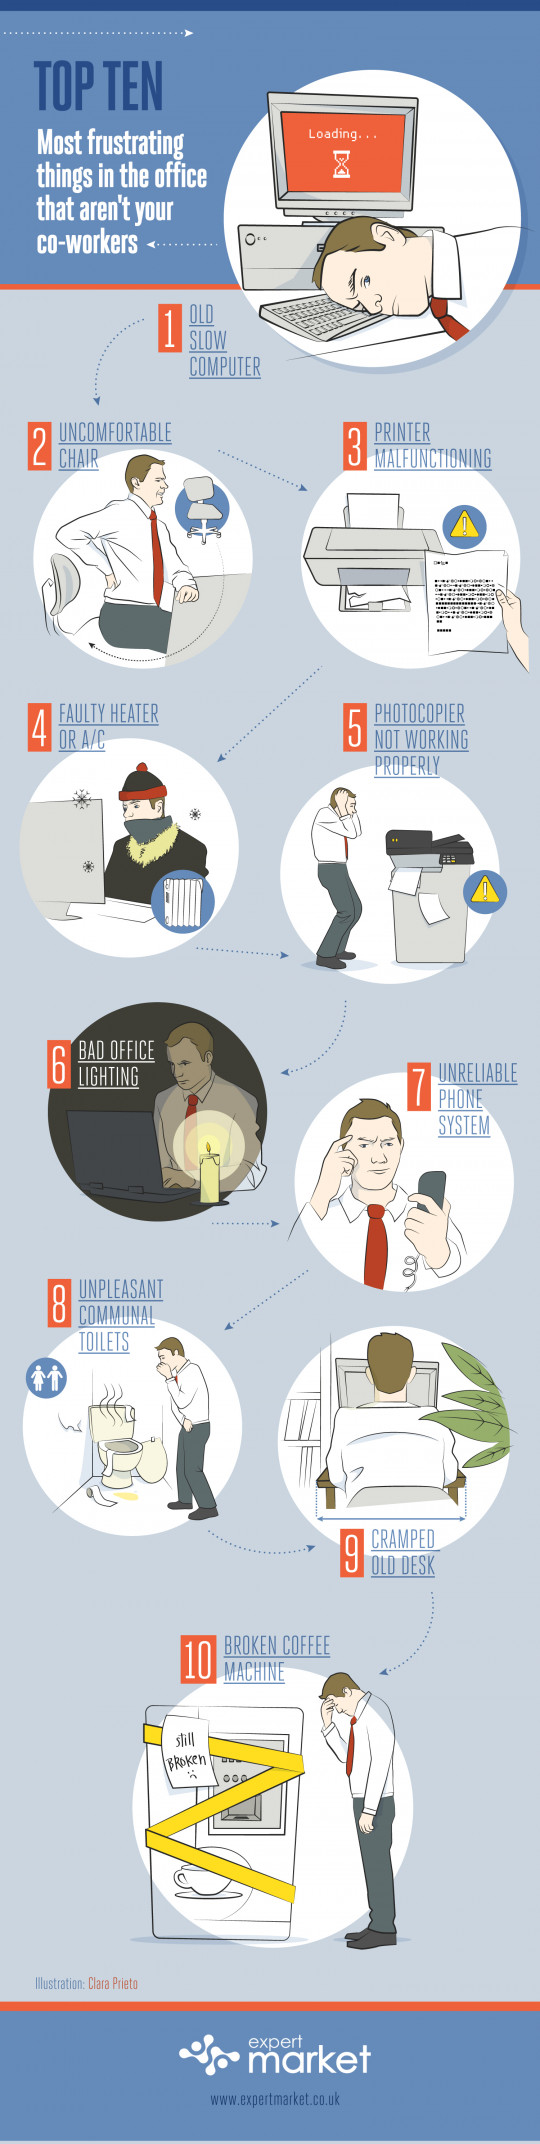 Top 10 Most Frustrating Things in the Office that Aren